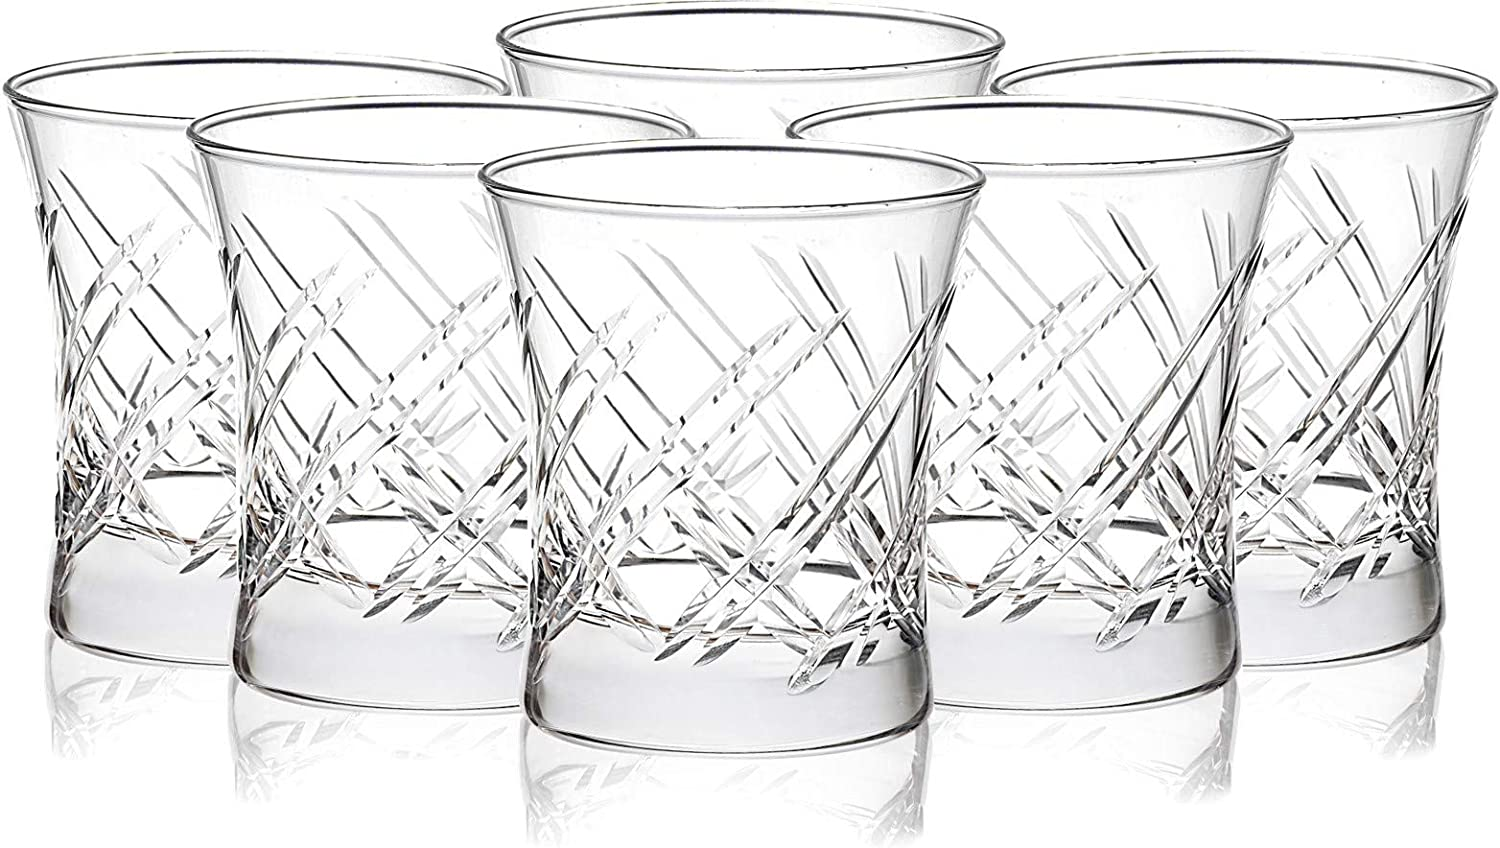 Drinking Glasses for Water, Juice, Beer, Wine and Cocktails, Set of 6, Clear Tempered Glass Hand Cut Tumblers, Glassware Set for All Occasions (8 oz)